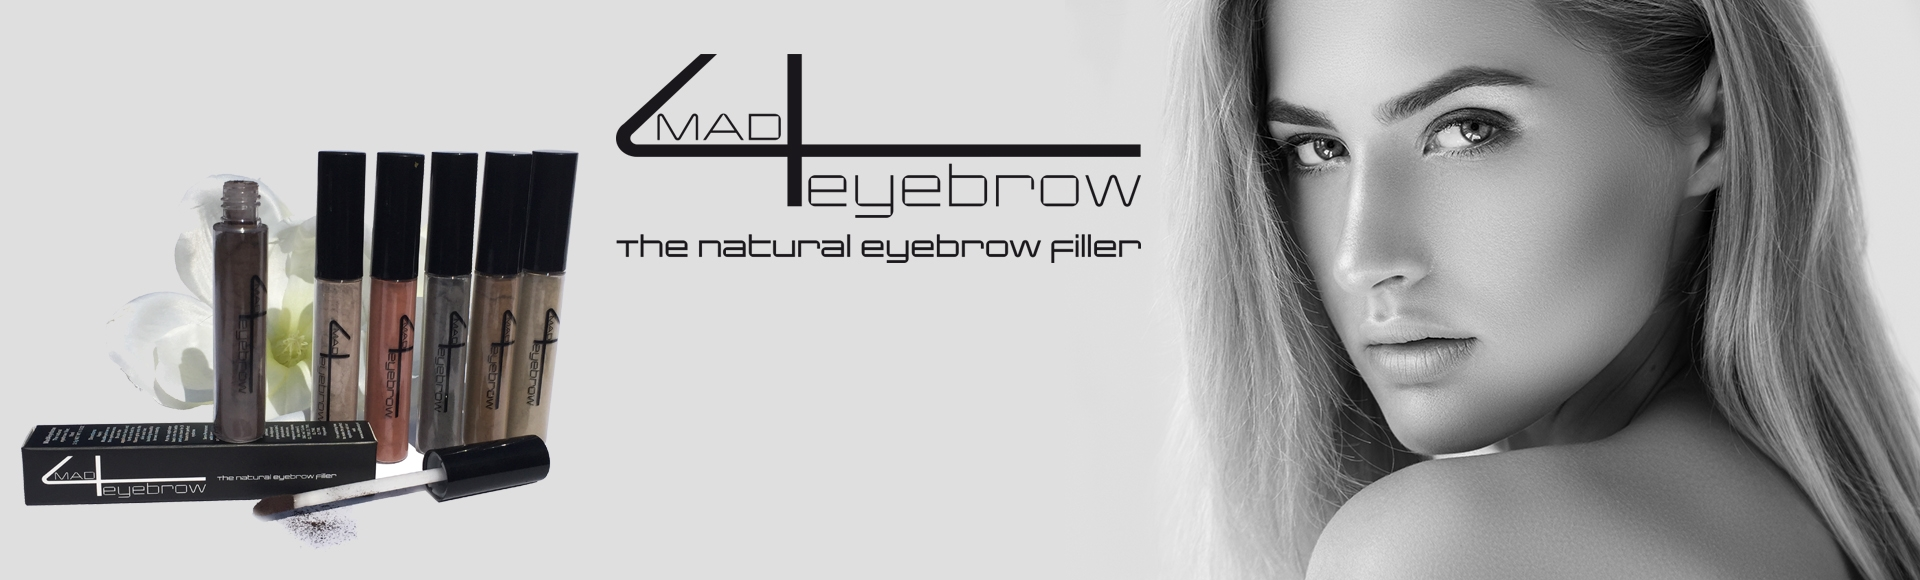 make-up sprancene Mad4eyerbrow